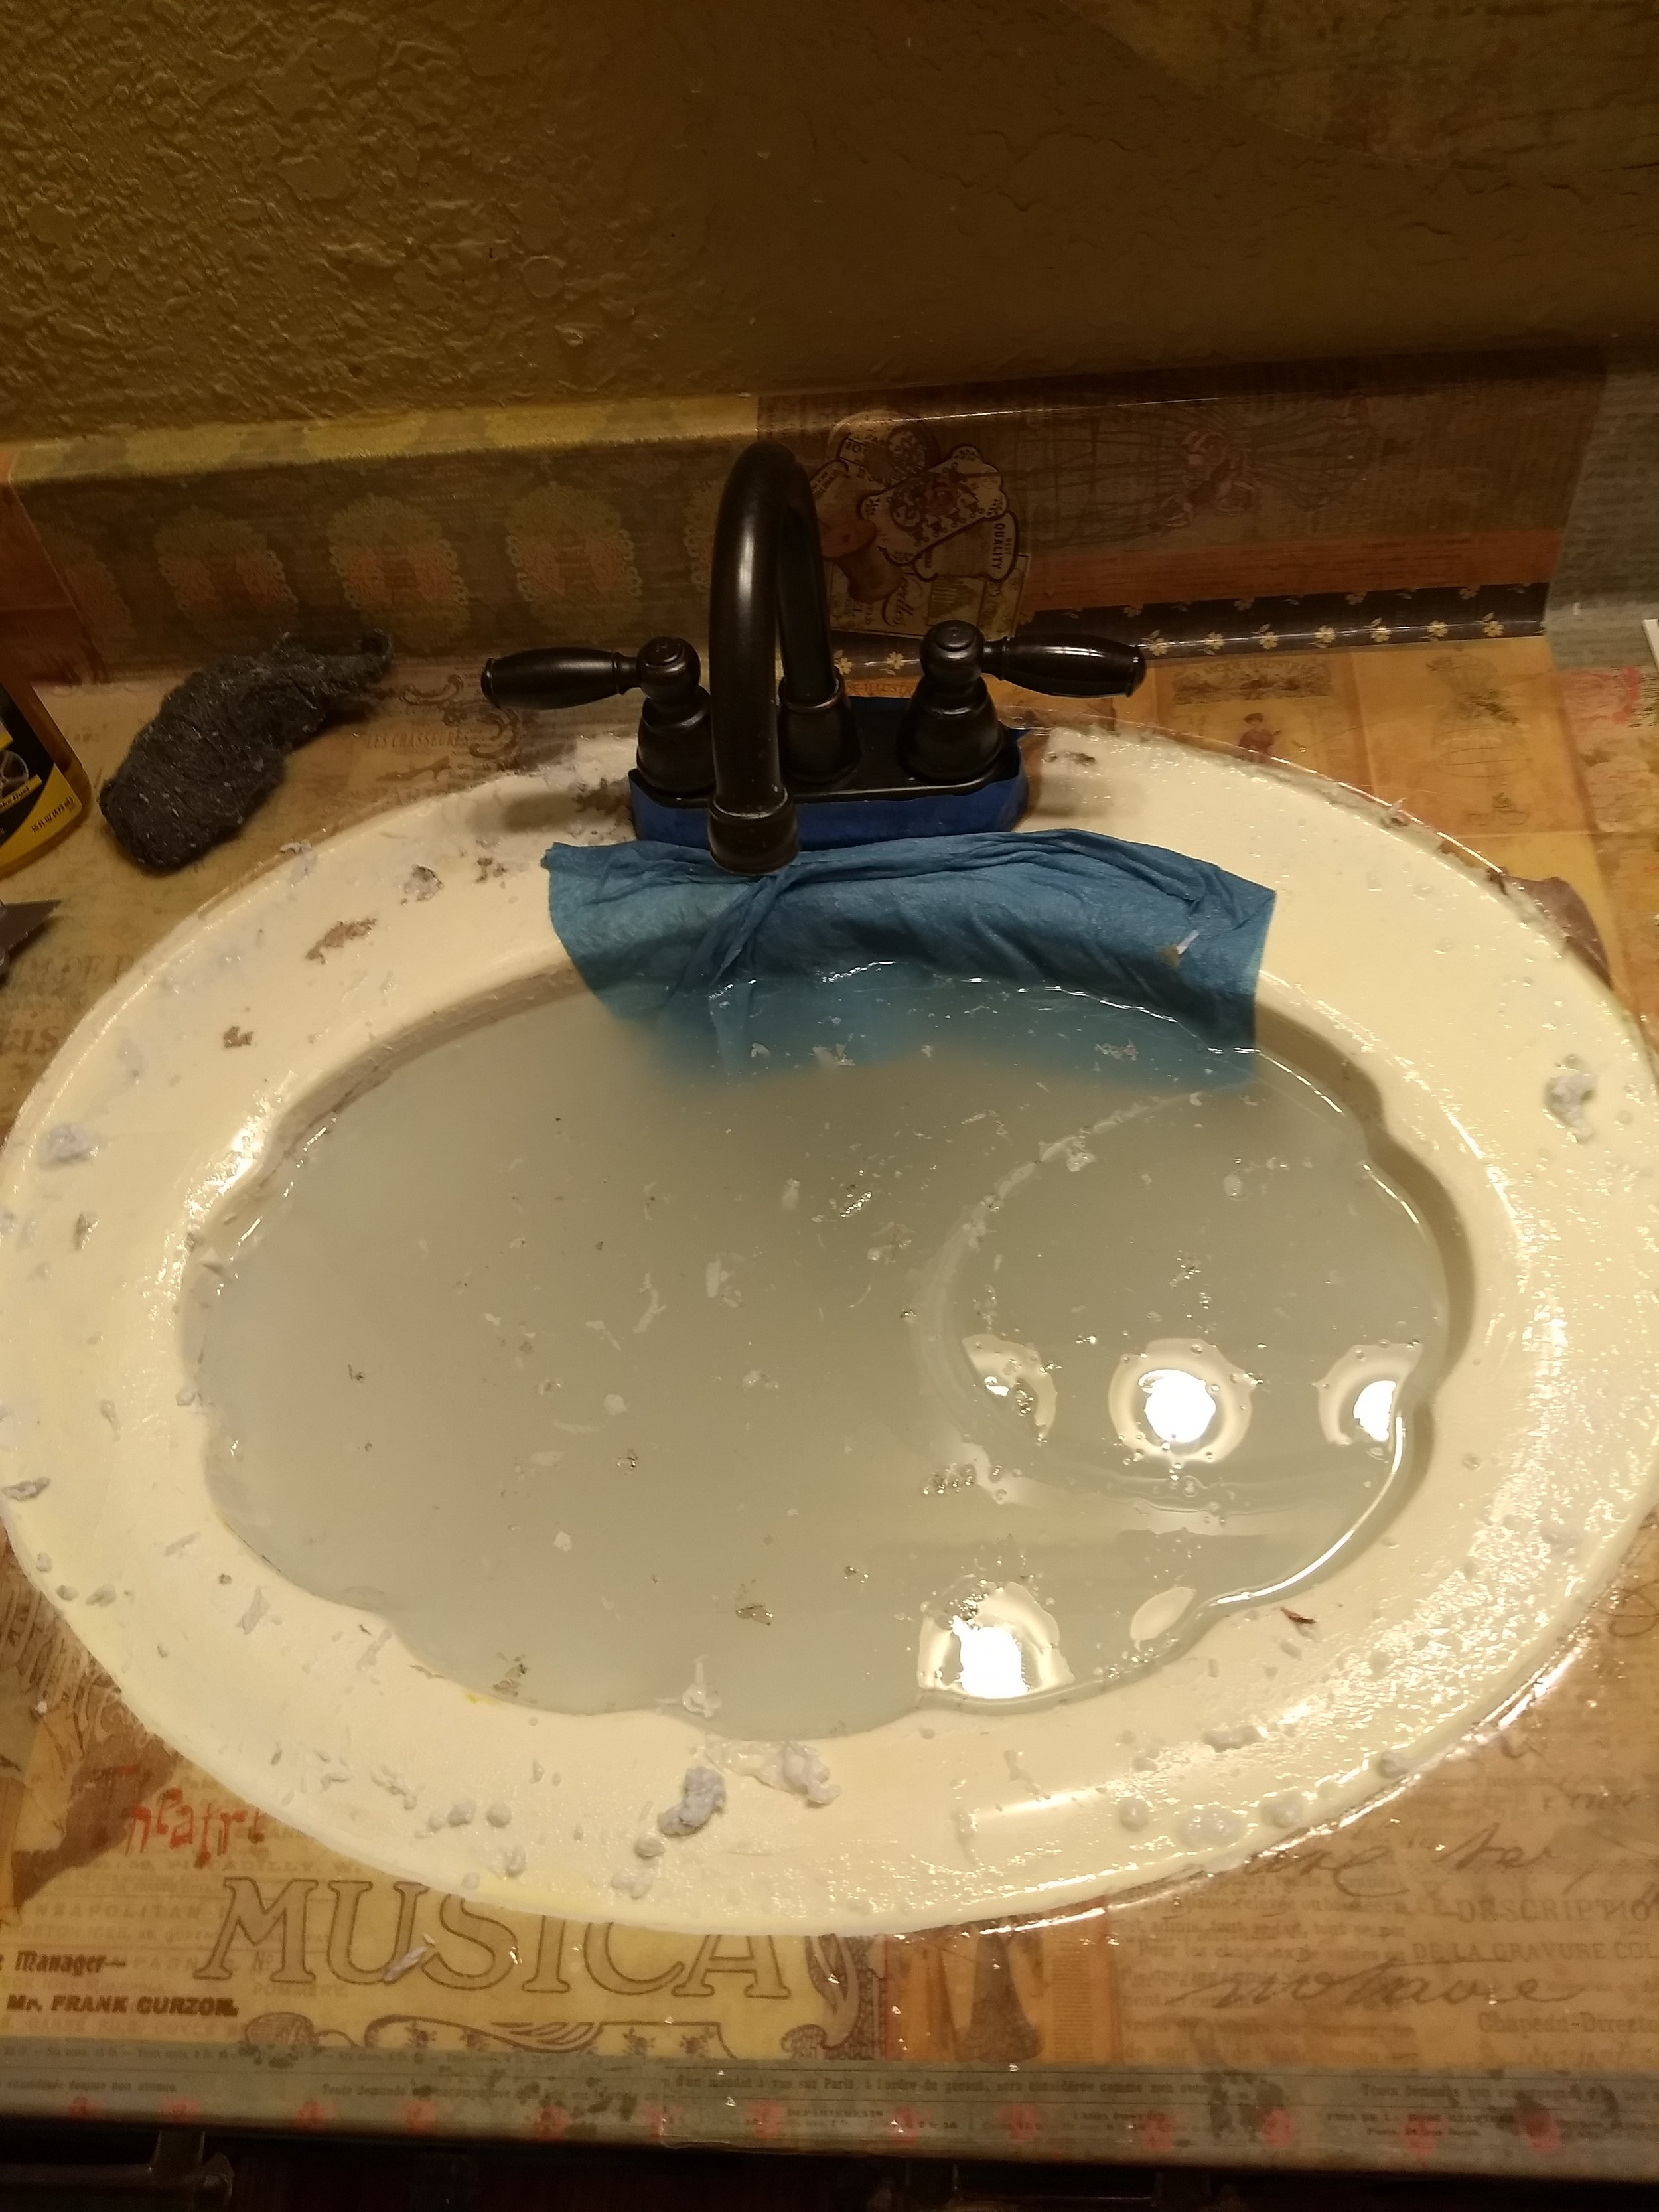 The sink soaking. Check out all the sticky paper pulp mess. Ugh!